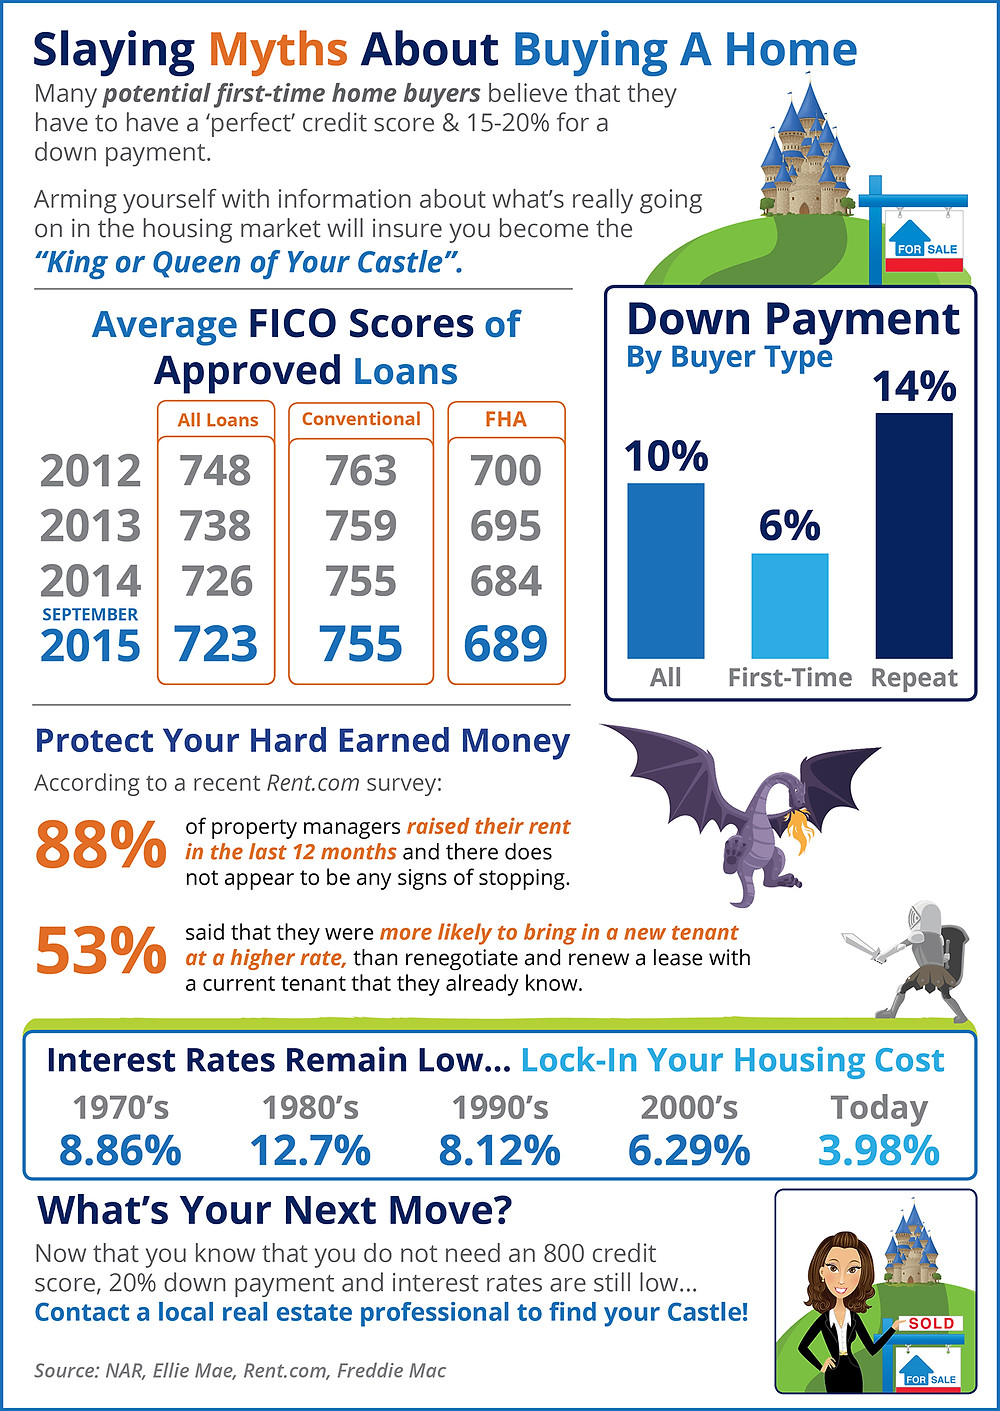 Slaying Myths About Buying A Home [INFOGRAPHIC] | Simplifying The Market